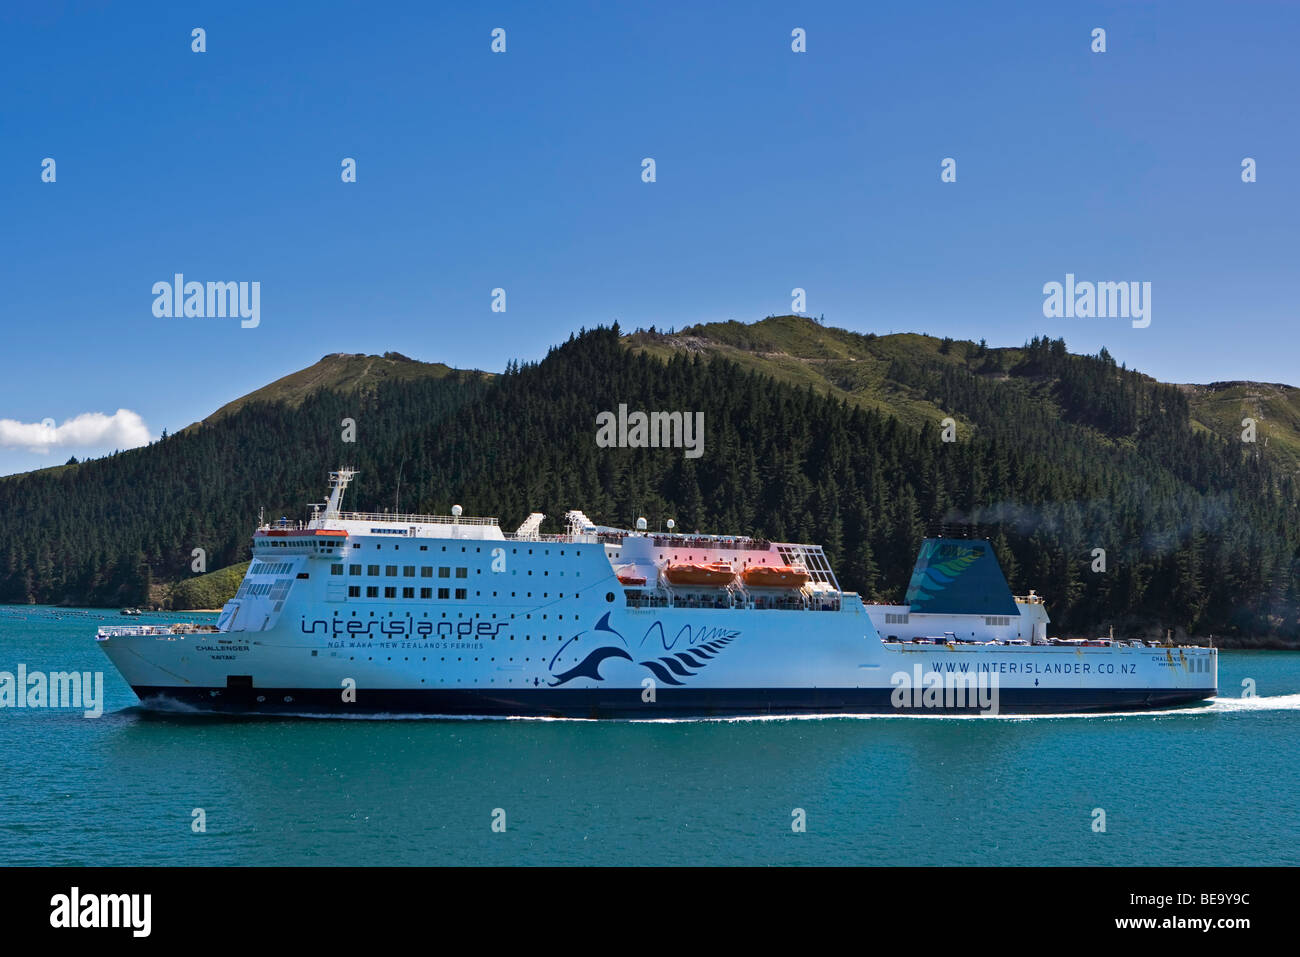 The Challenger Kaitaki, Interislander Ferry, in the Tory Channel, Queen Charlotte Sounds, South Island, New Zealand. - Stock Image